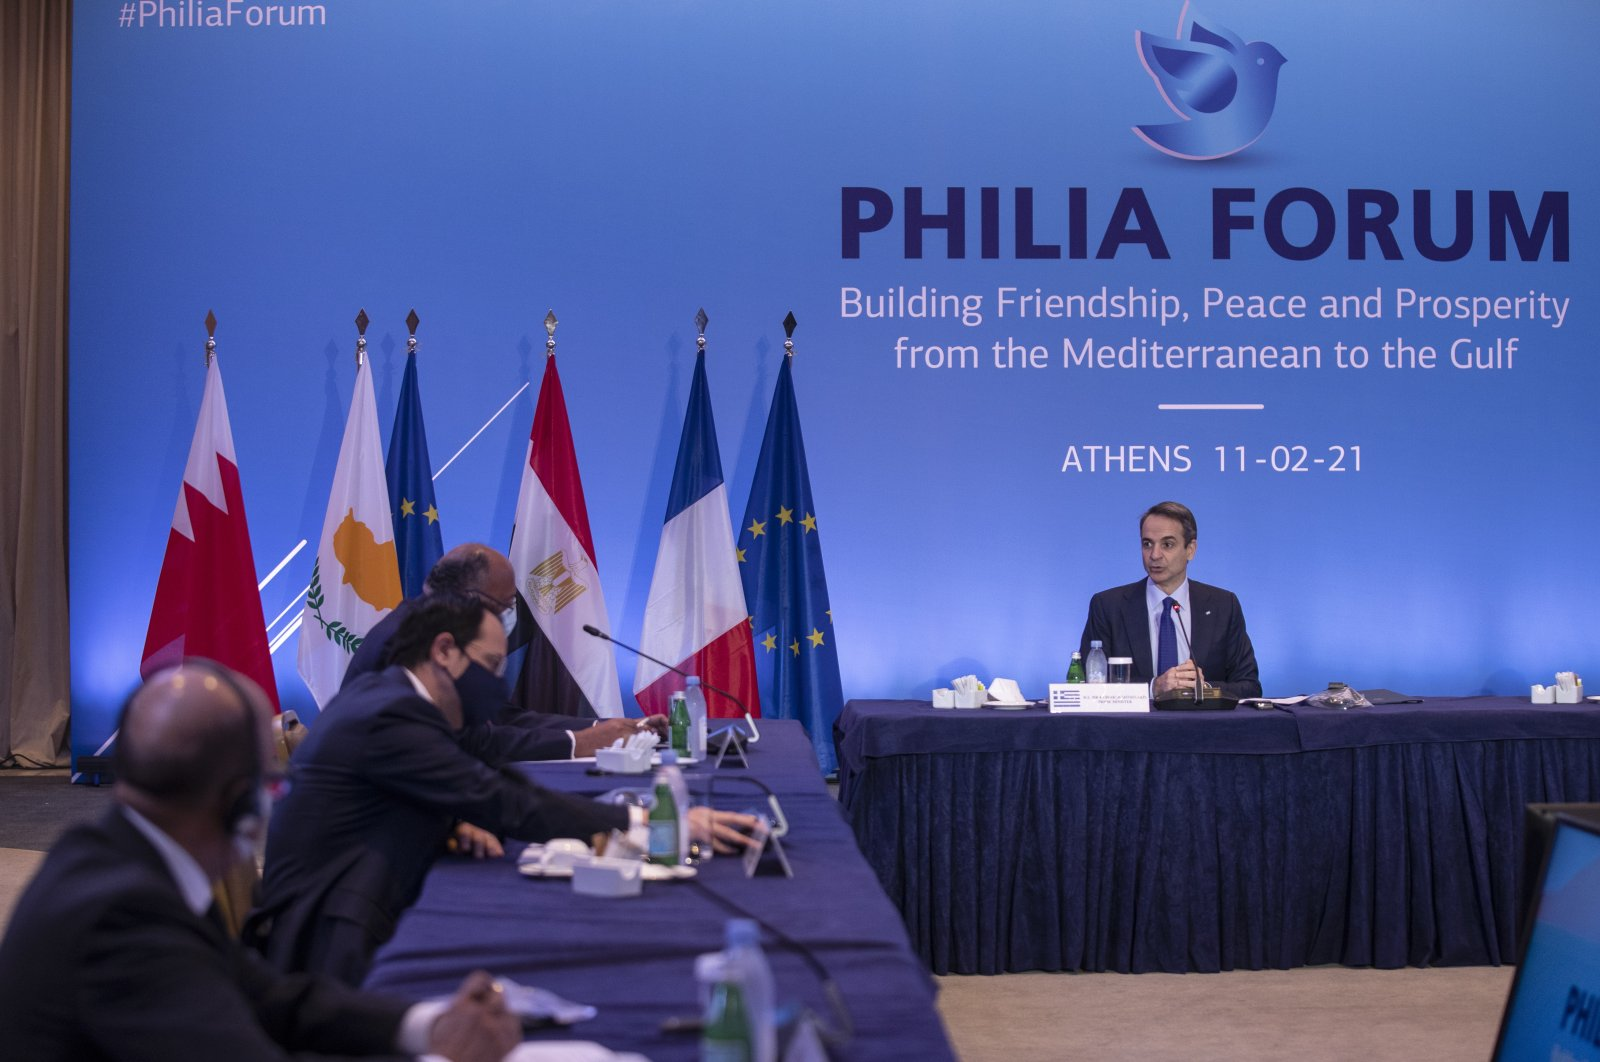 From left, Bahrain's Foreign Minister Abdullatif Al-Zayani, Greek Cypriot Foreign Minister Nicos Christodoulides and Egyptian Foreign Minister Sameh Shoukry listen to Greek Prime Minister Kyriakos Mitsotakis' (R) speech during a meeting in Athens, Greece, Feb. 11, 2021. (AP Photo)